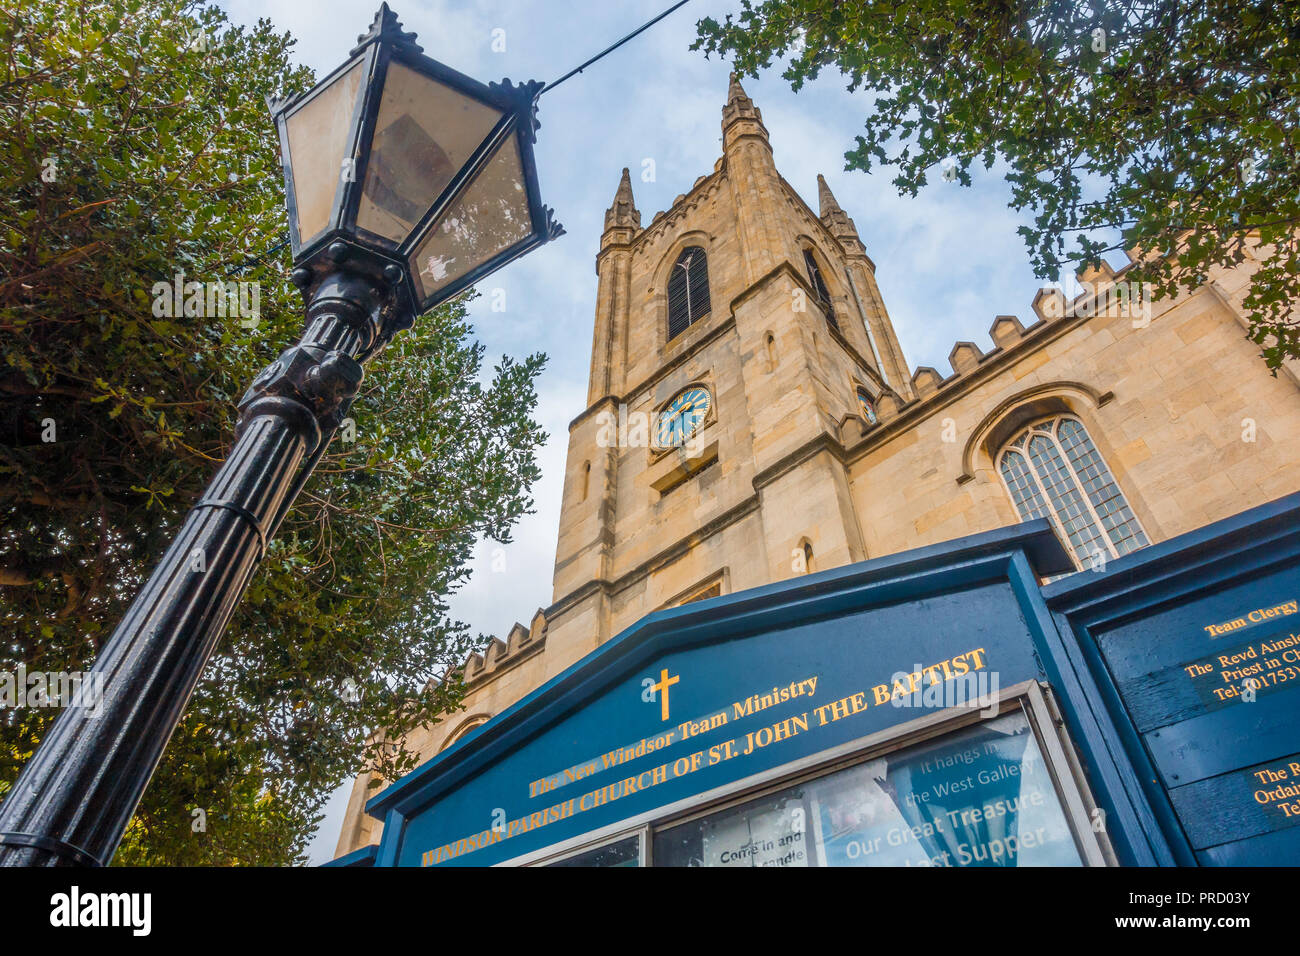 a-view-of-the-front-of-windsor-parish-church-of-st-john-the-baptist-in-windsor-uk-PRD03Y.jpg